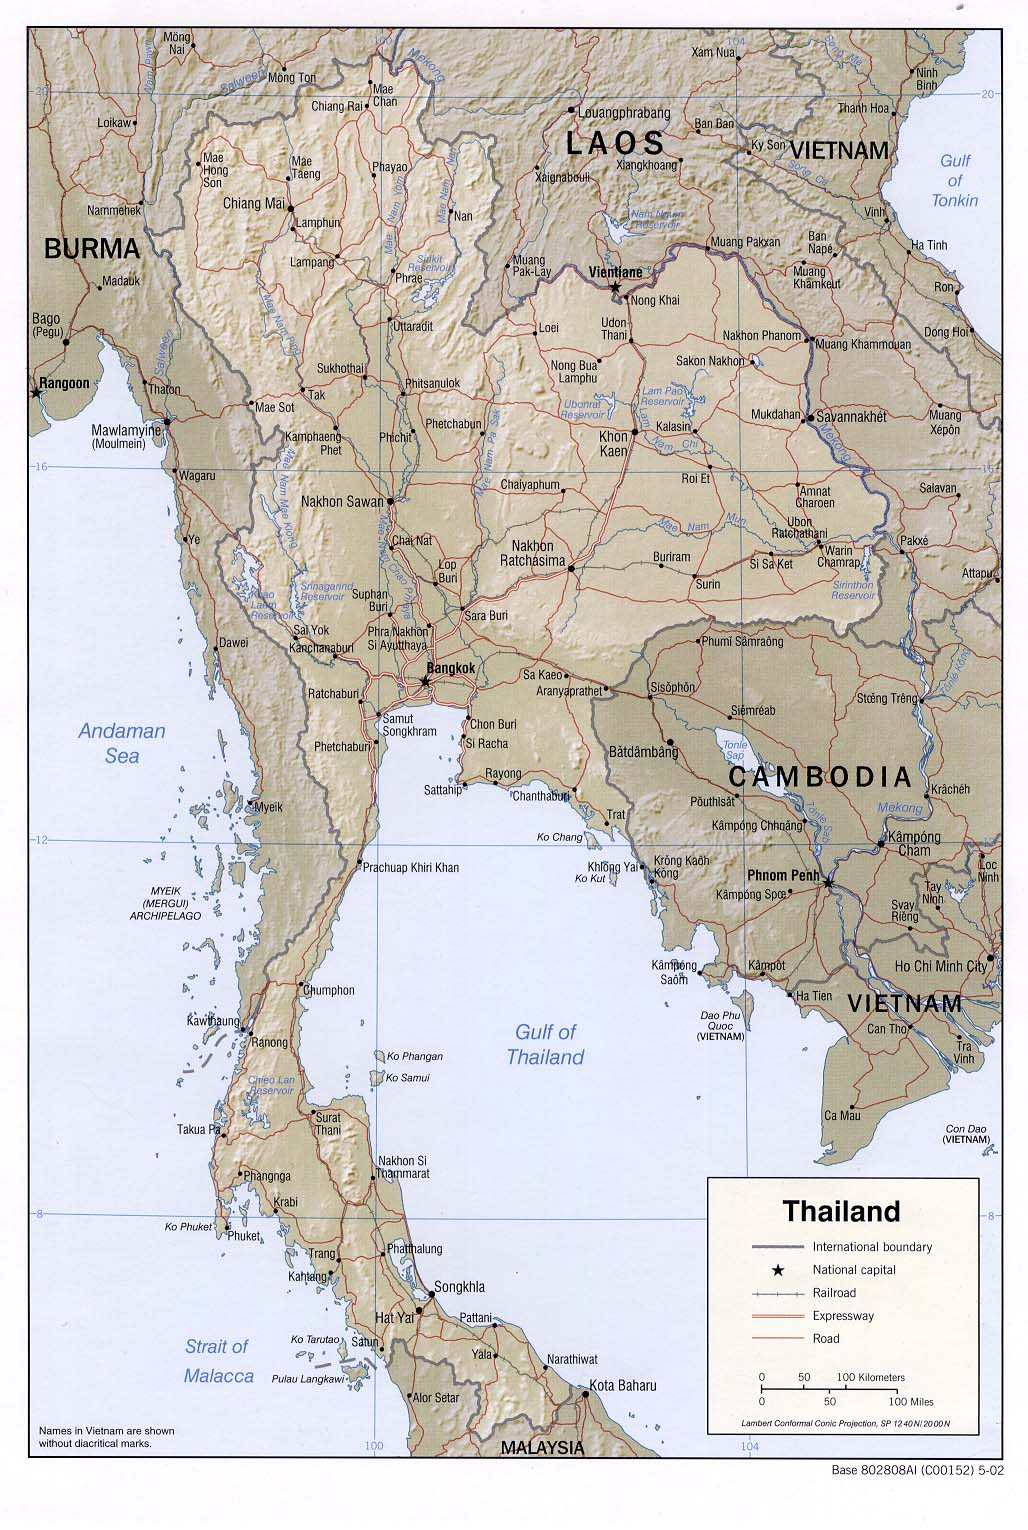 Download Free Thailand Maps - Burma clickable map